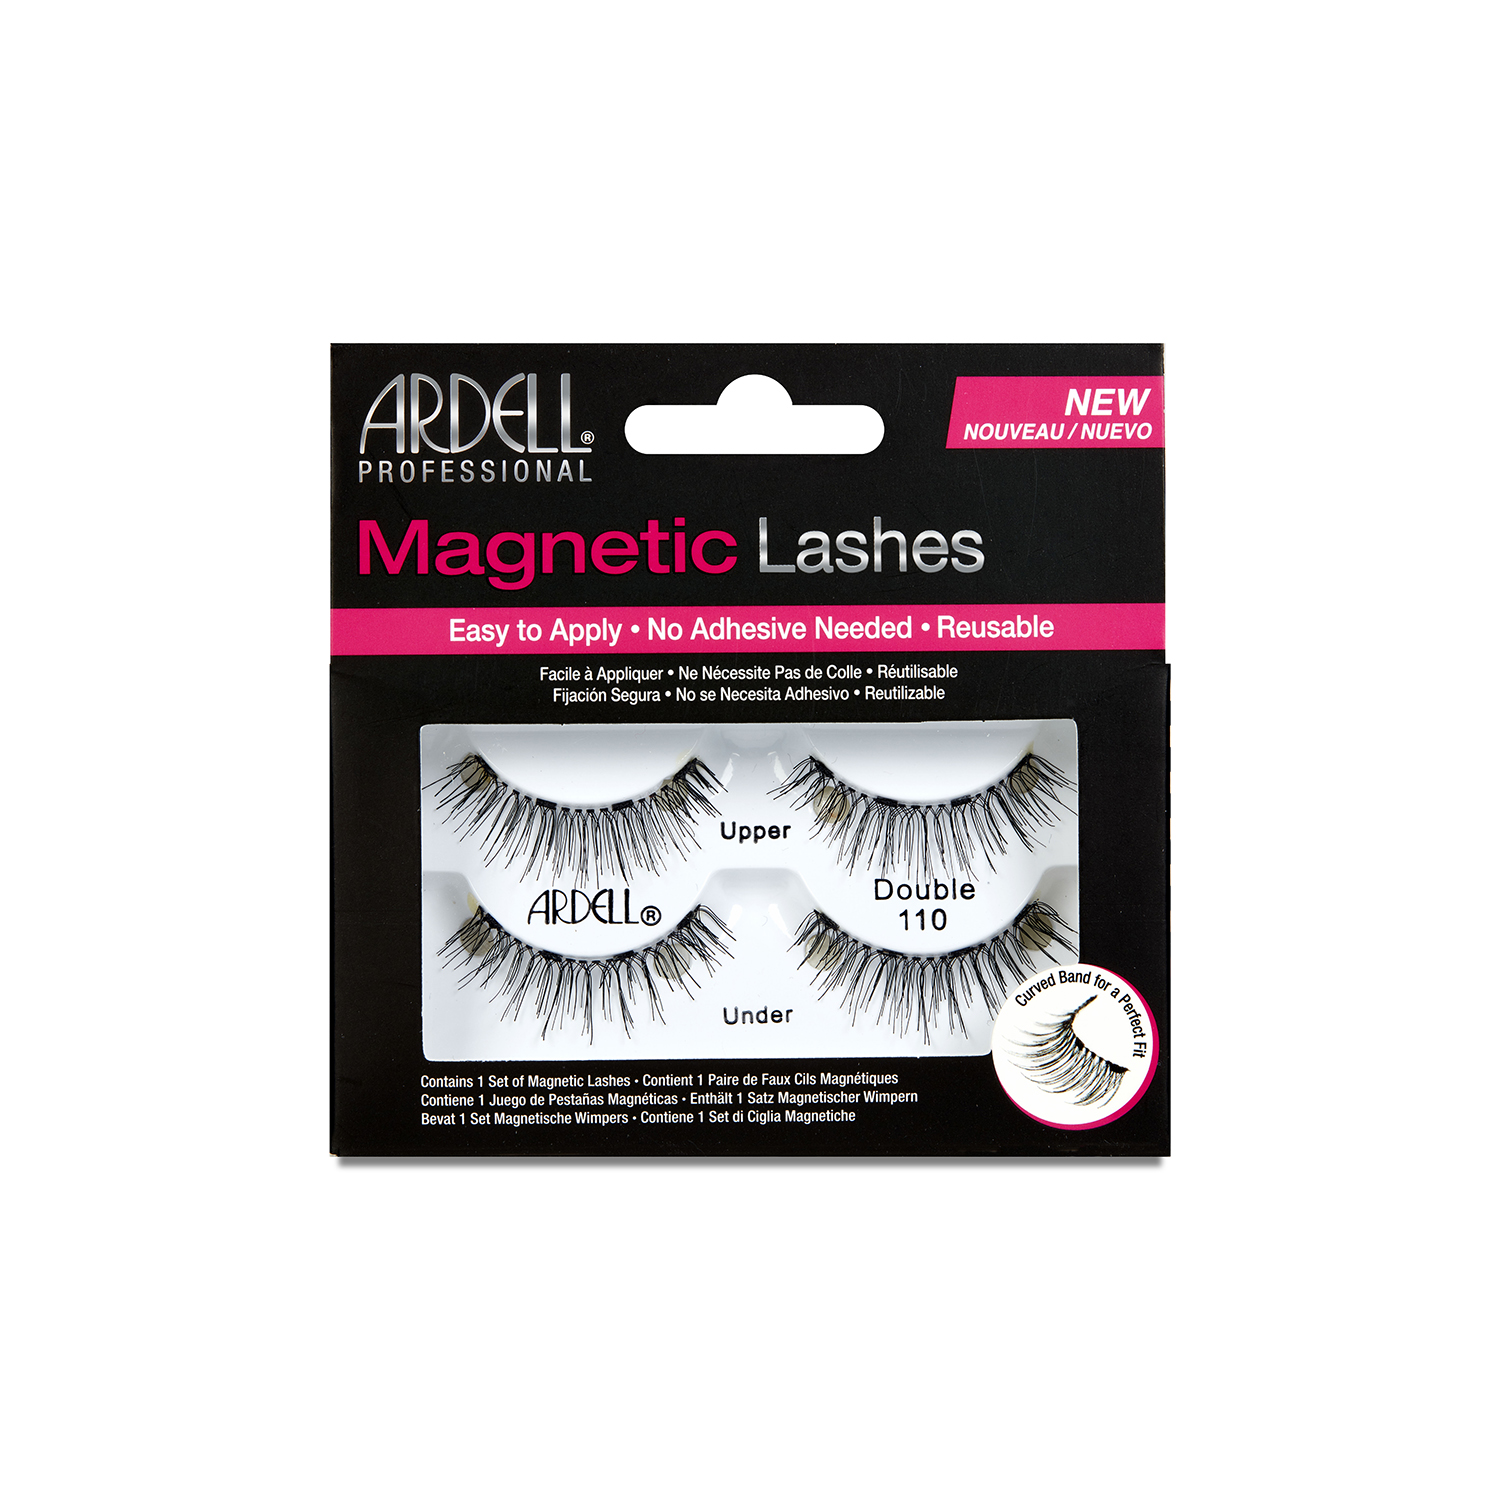 975ea99a149 How to Apply Magnetic Lashes Perfectly | Real Simple